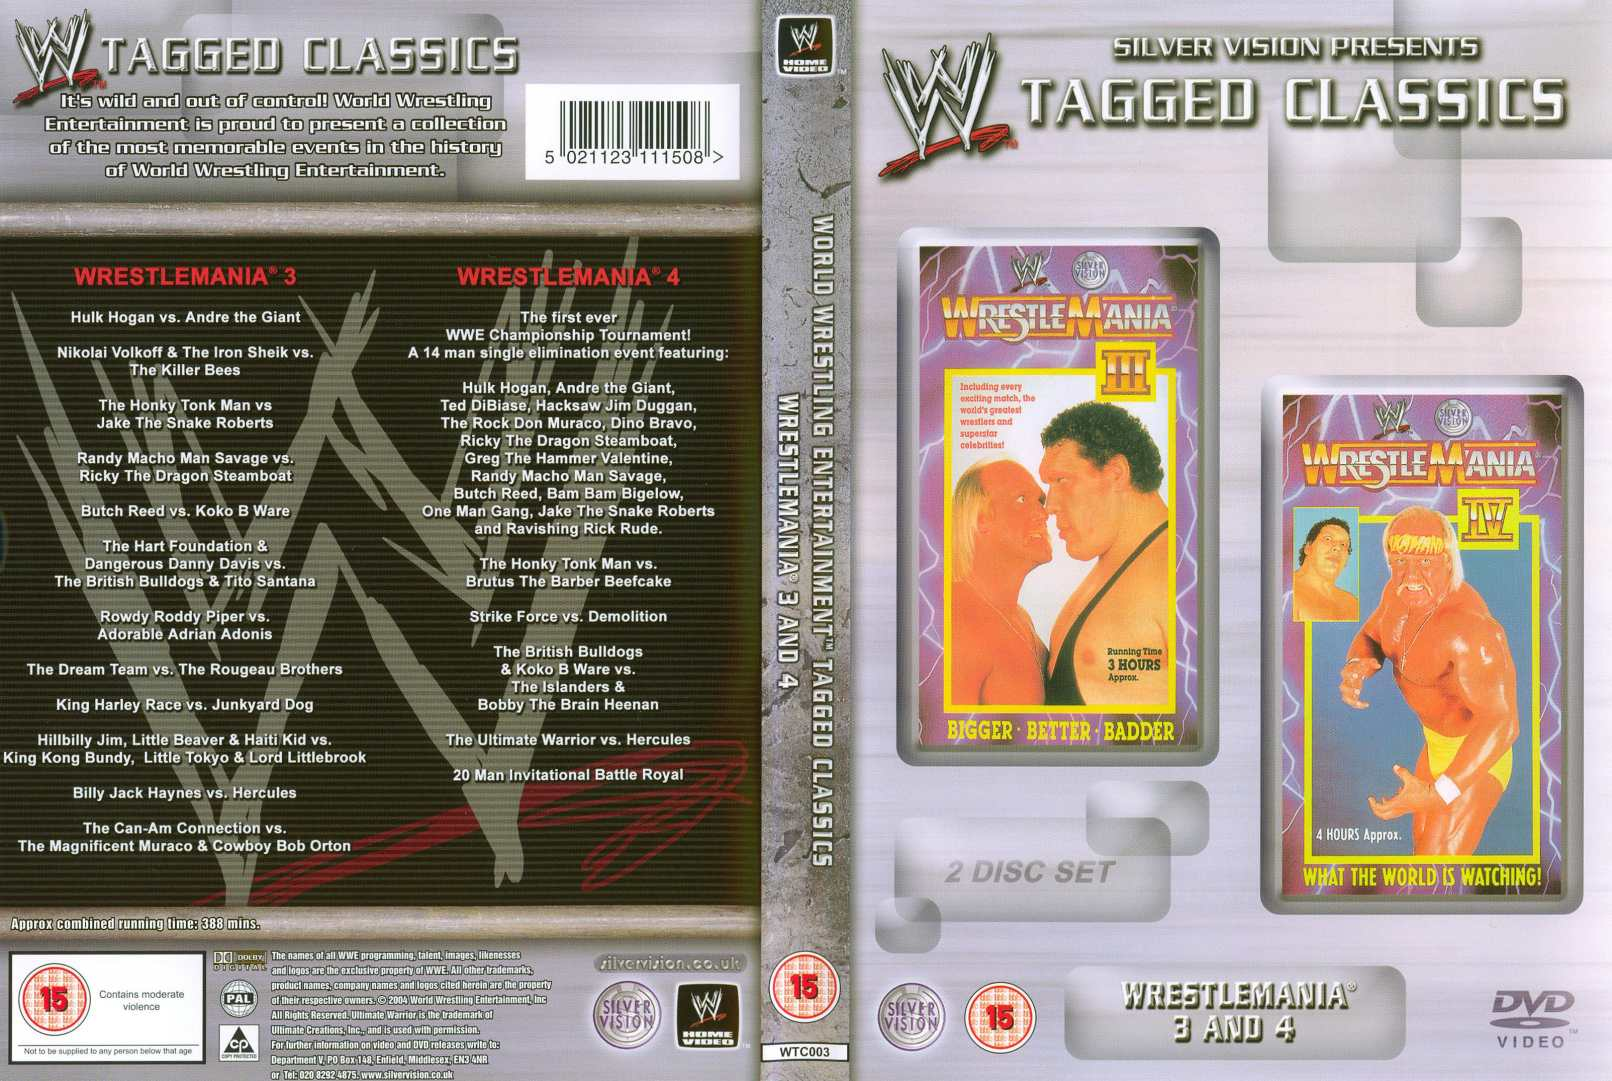 wwe_tagged_classics_-_wrestlemania_3_&_4